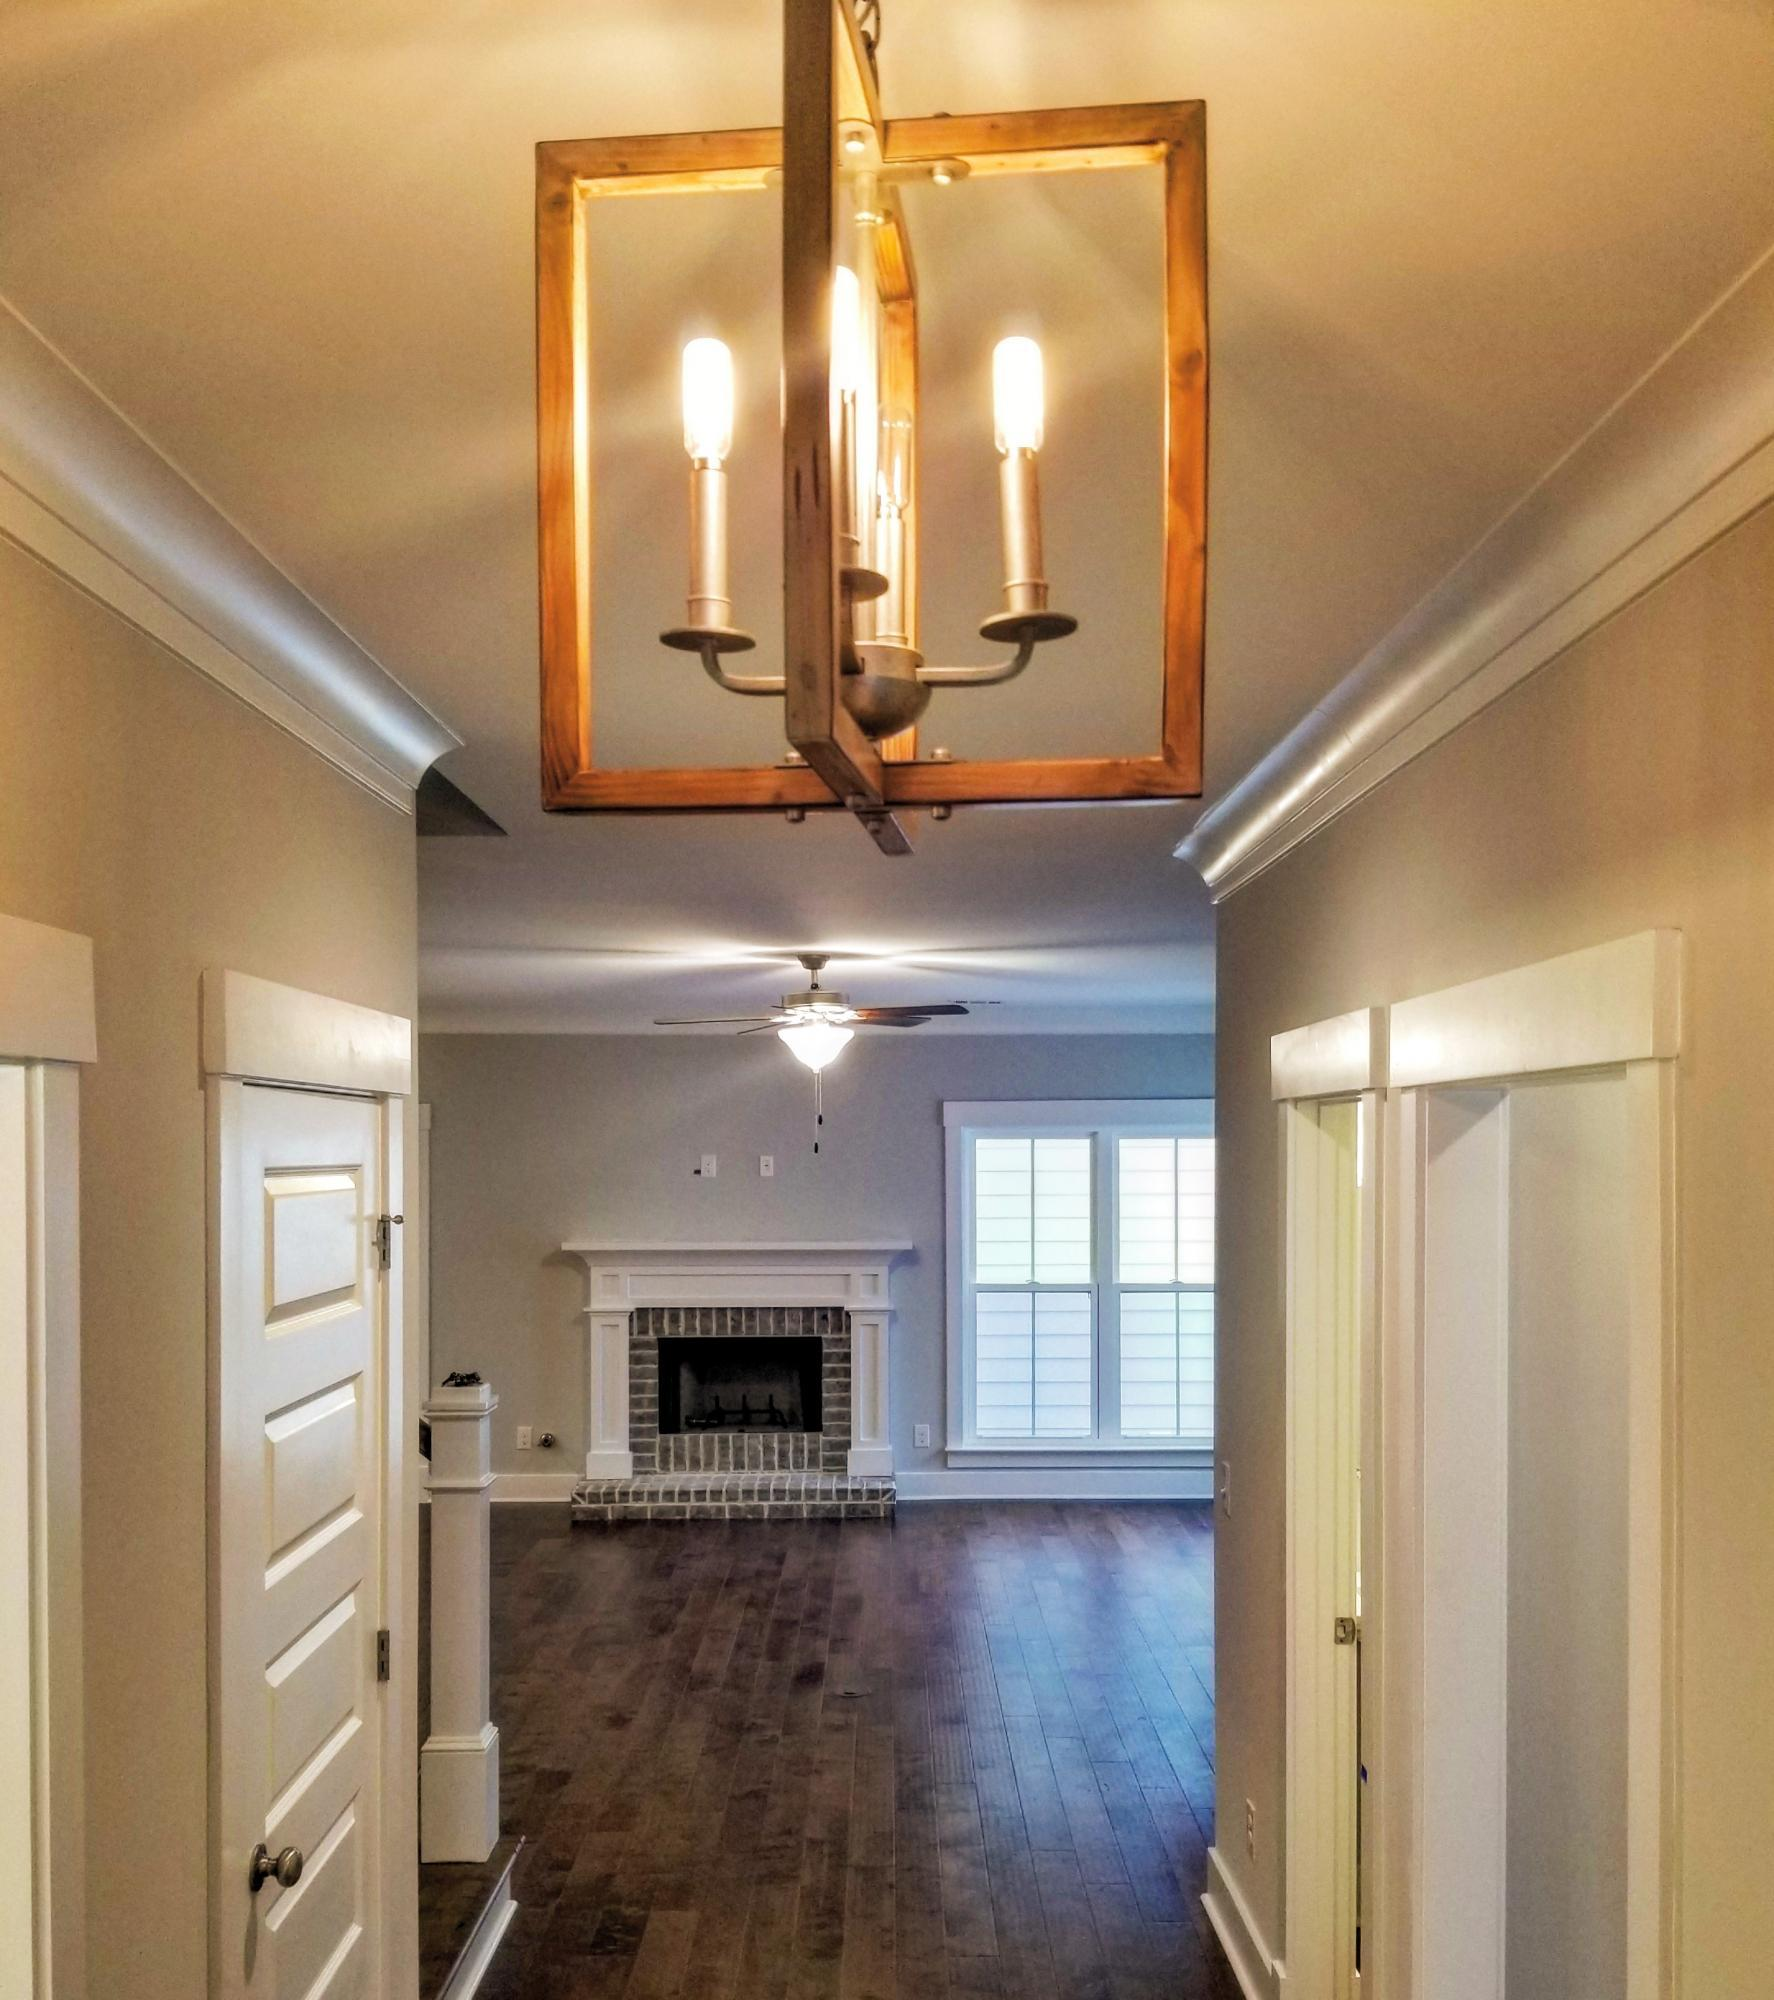 Living Area featured in the Cumberland By Konter Quality Homes in Savannah, GA